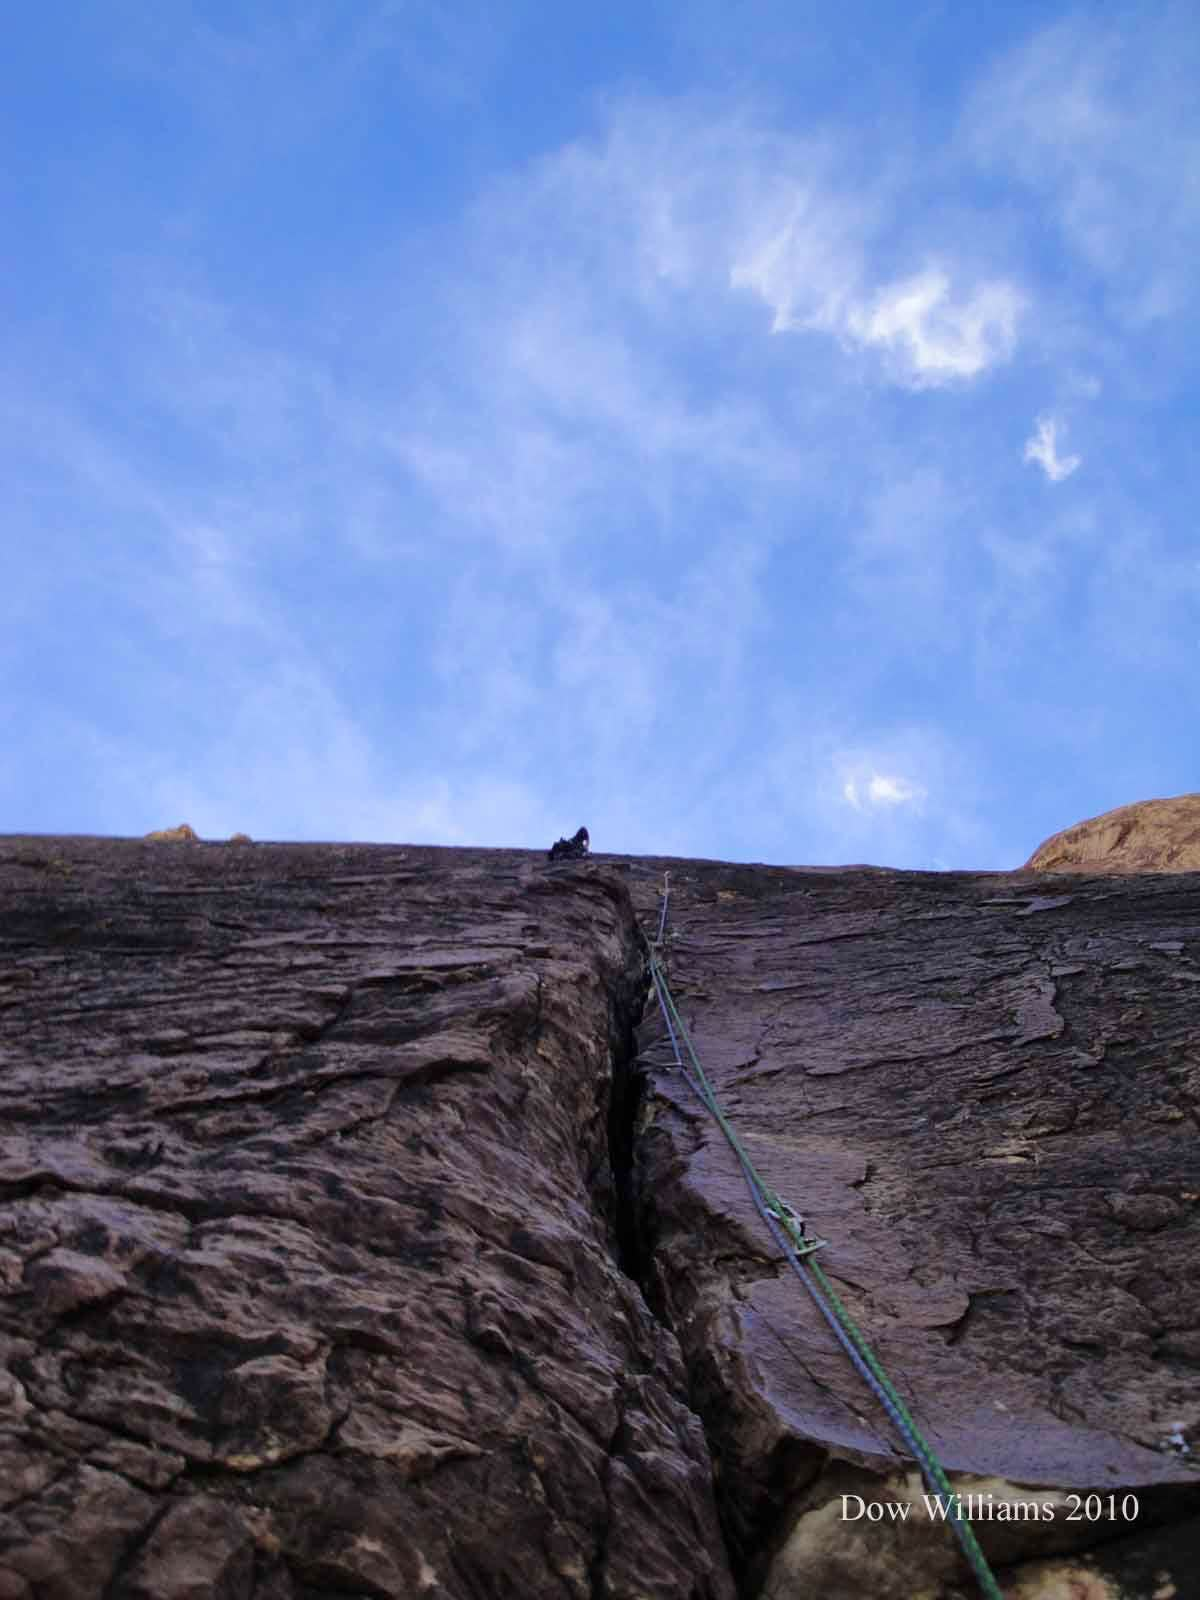 Yellow Brick Road, 5.10c, 4 Pitches